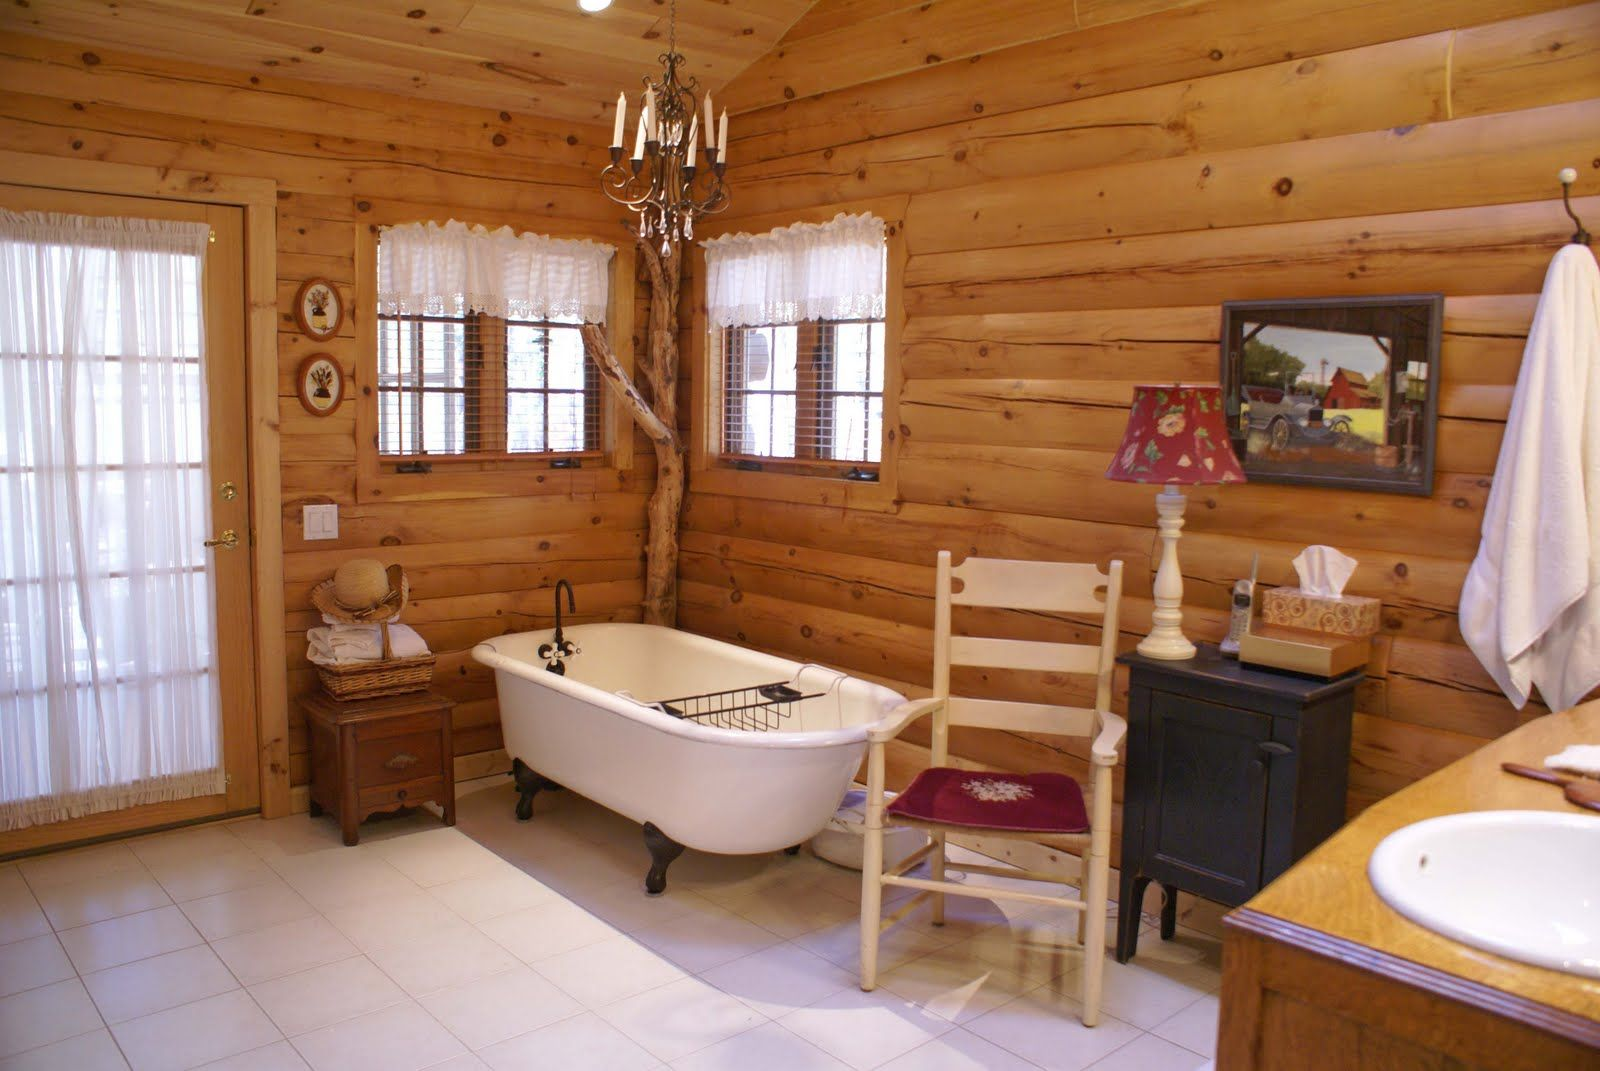 Home interiors bathroom - Cabin Interior Design